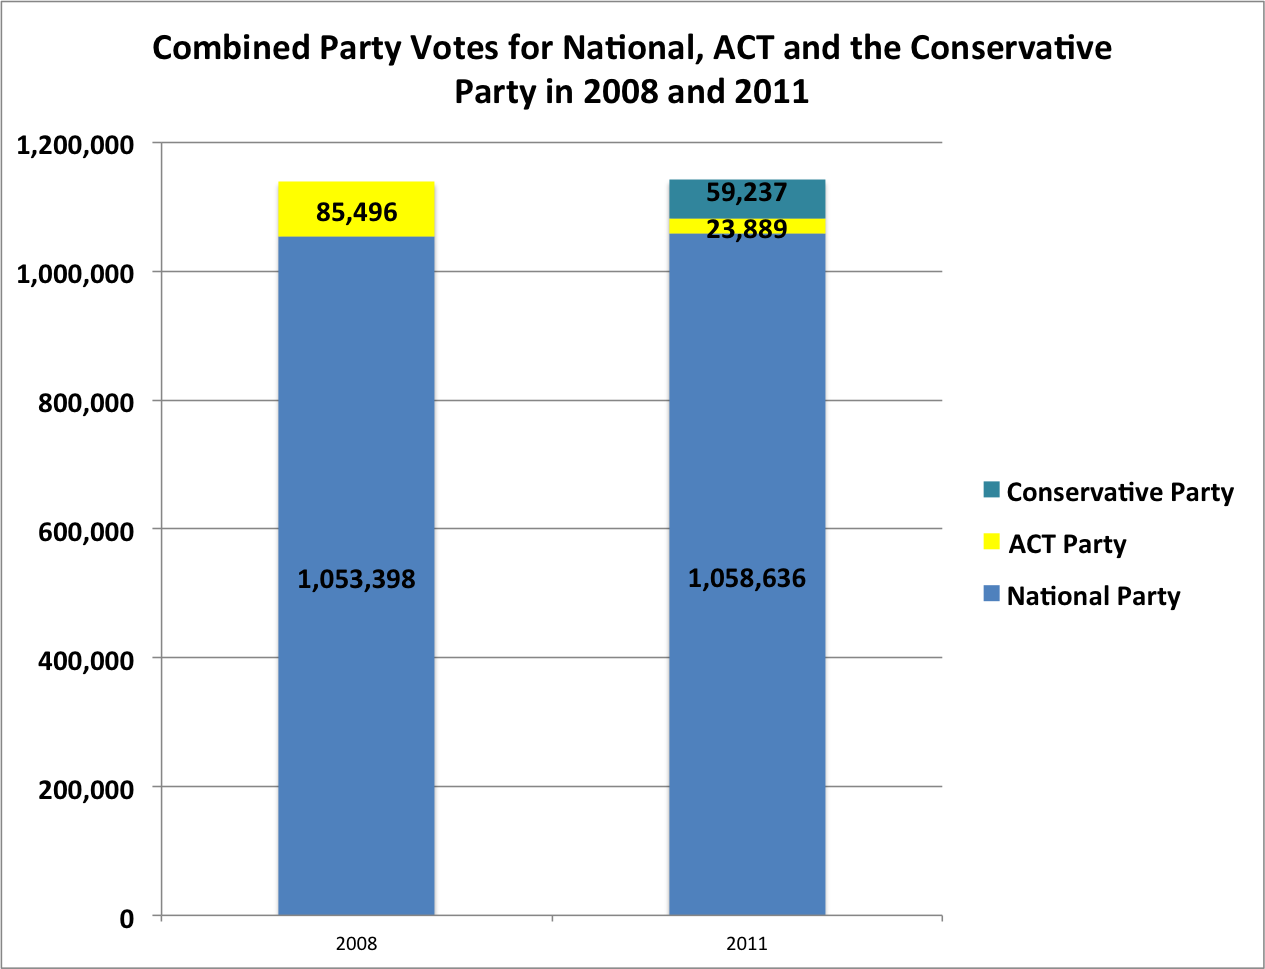 Combined National, ACT and Conservative Party in 2008 and 2011, Nationally